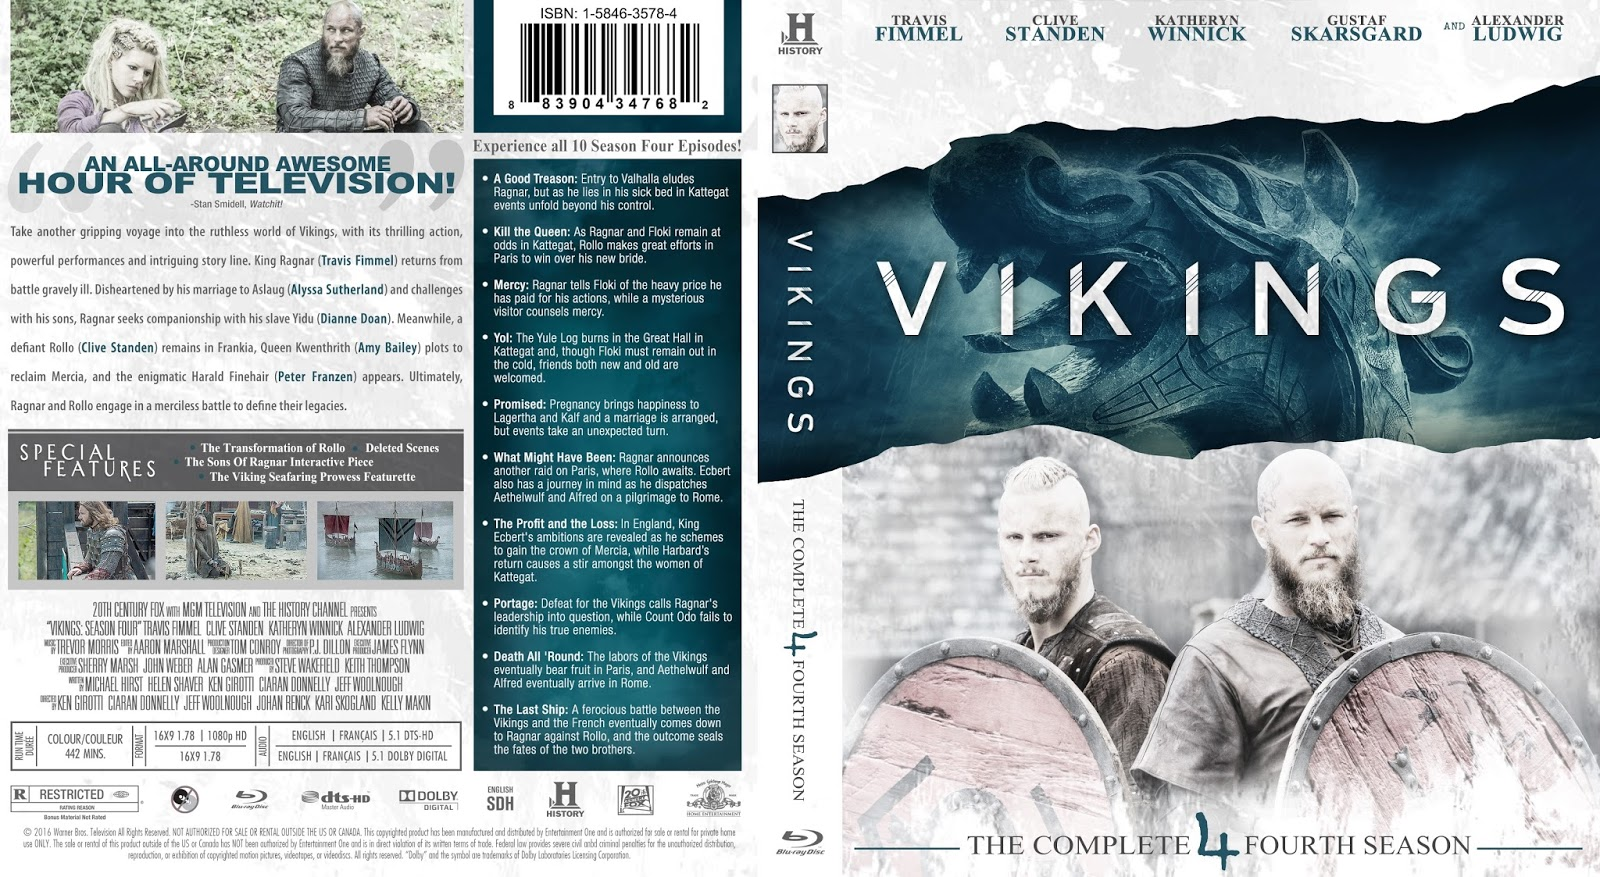 Vikings Season 4 Bluray Cover | Cover Addict - Free DVD